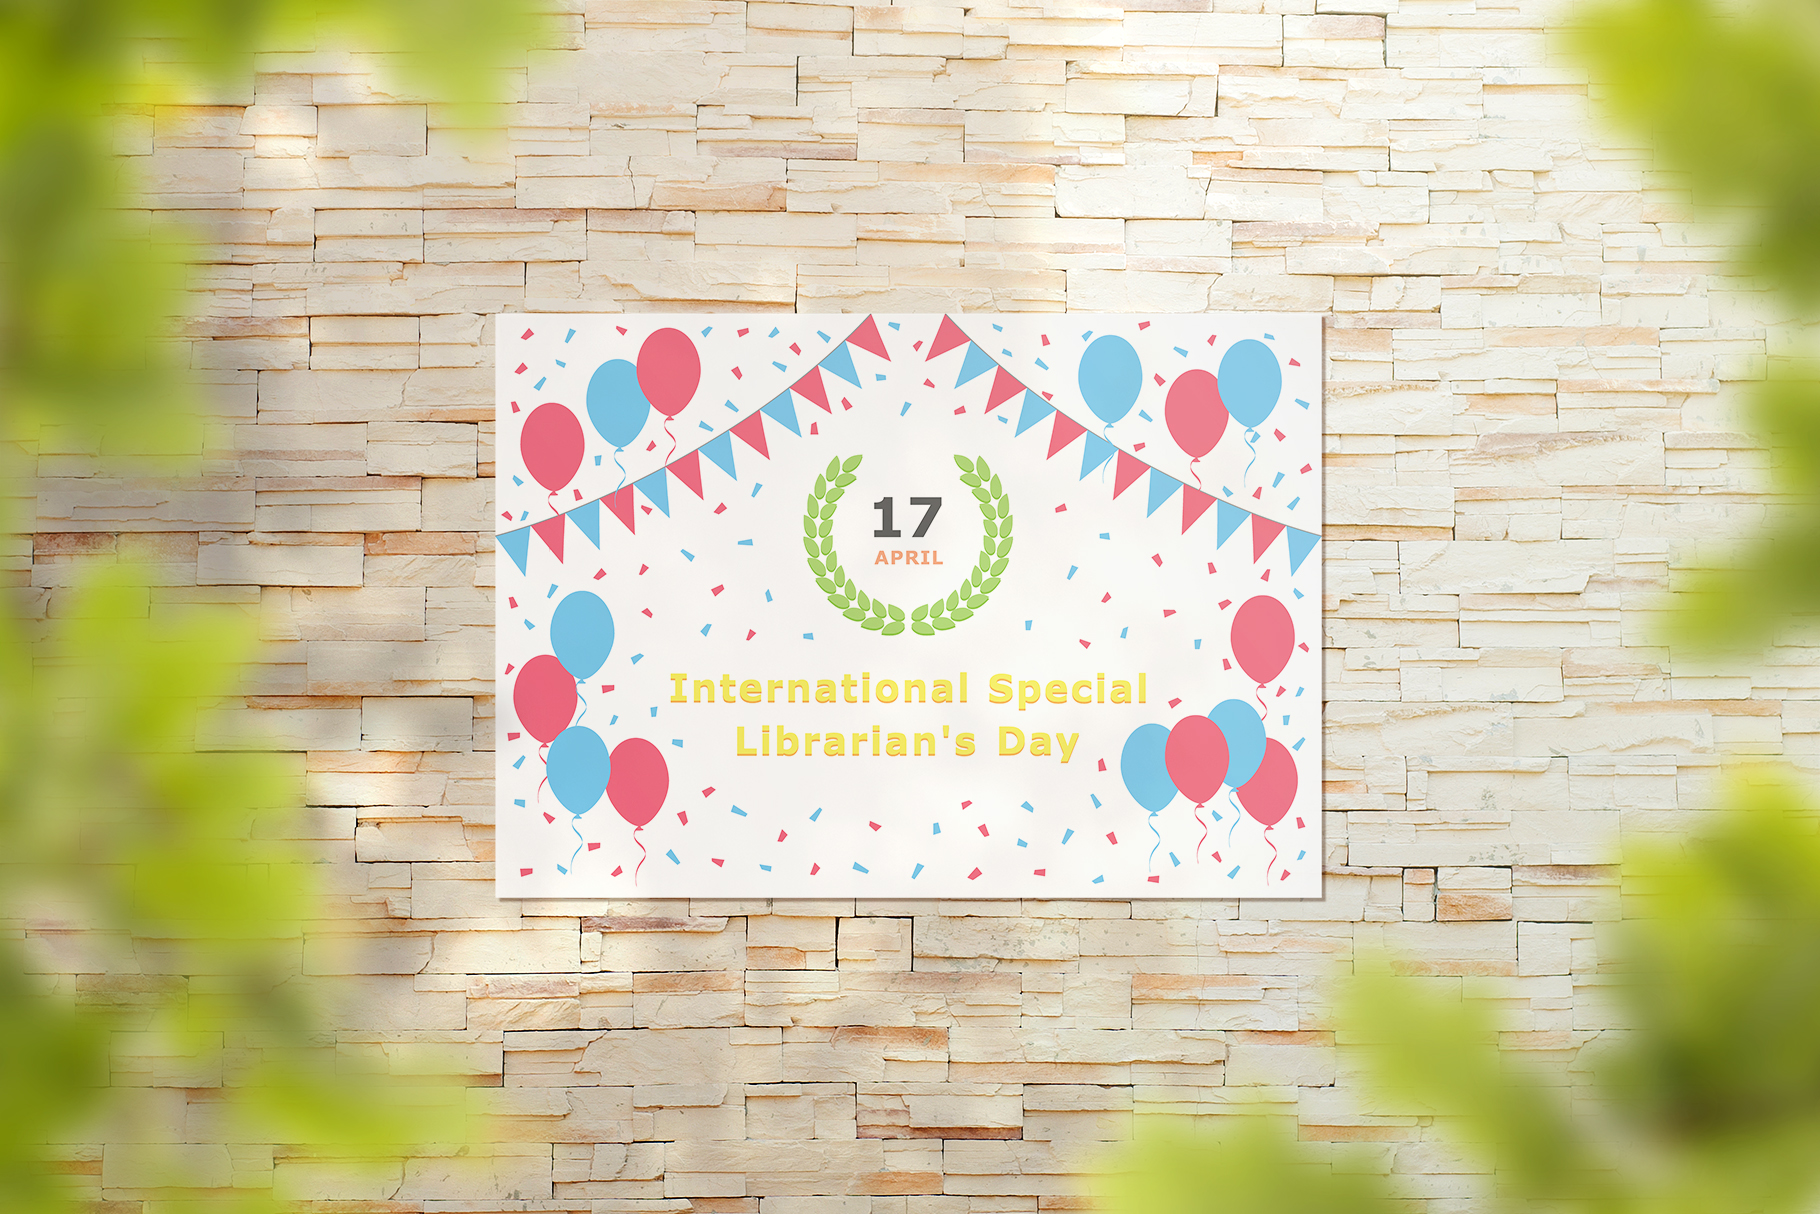 International Special Librarians Day - April 17 example image 4